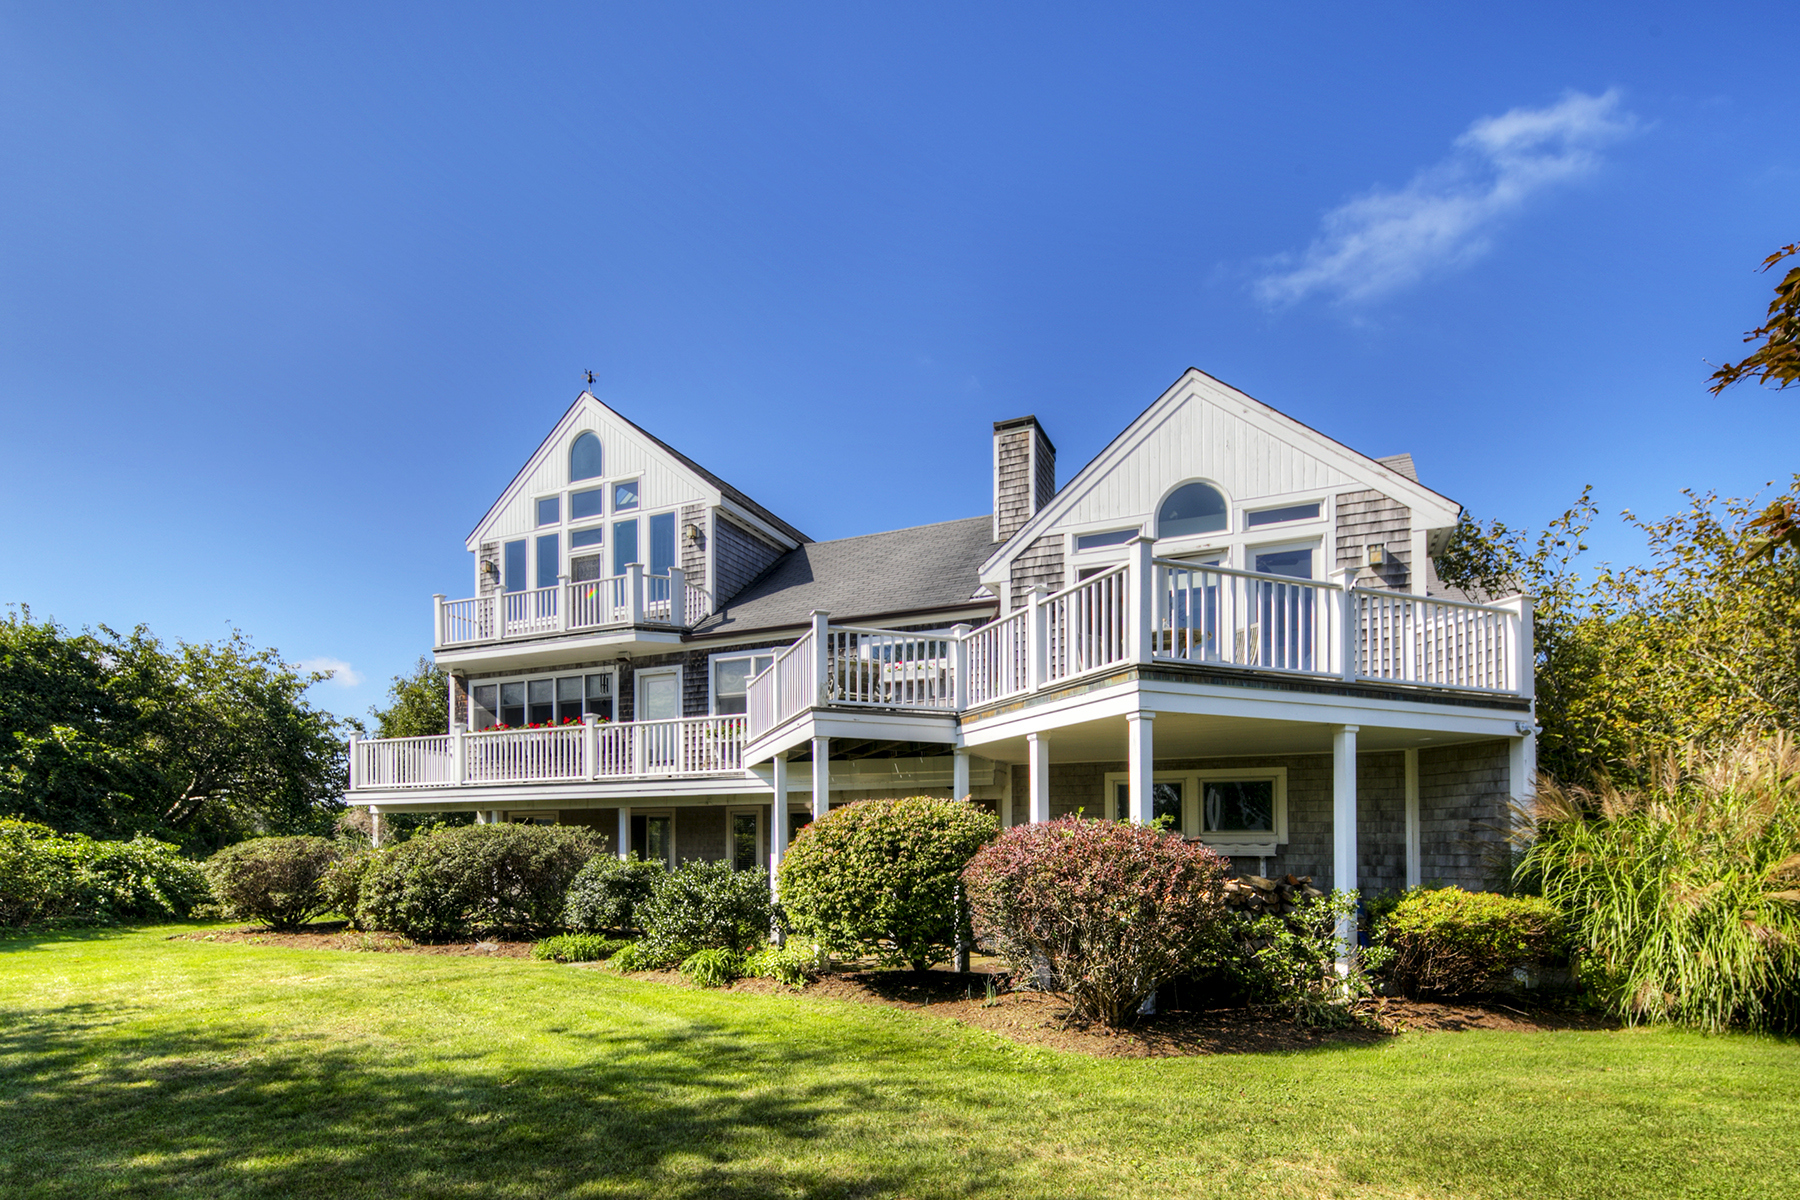 Single Family Home for Sale at Privacy on Easton's Point 71 Ashurst Avenue Middletown, Rhode Island 02842 United States